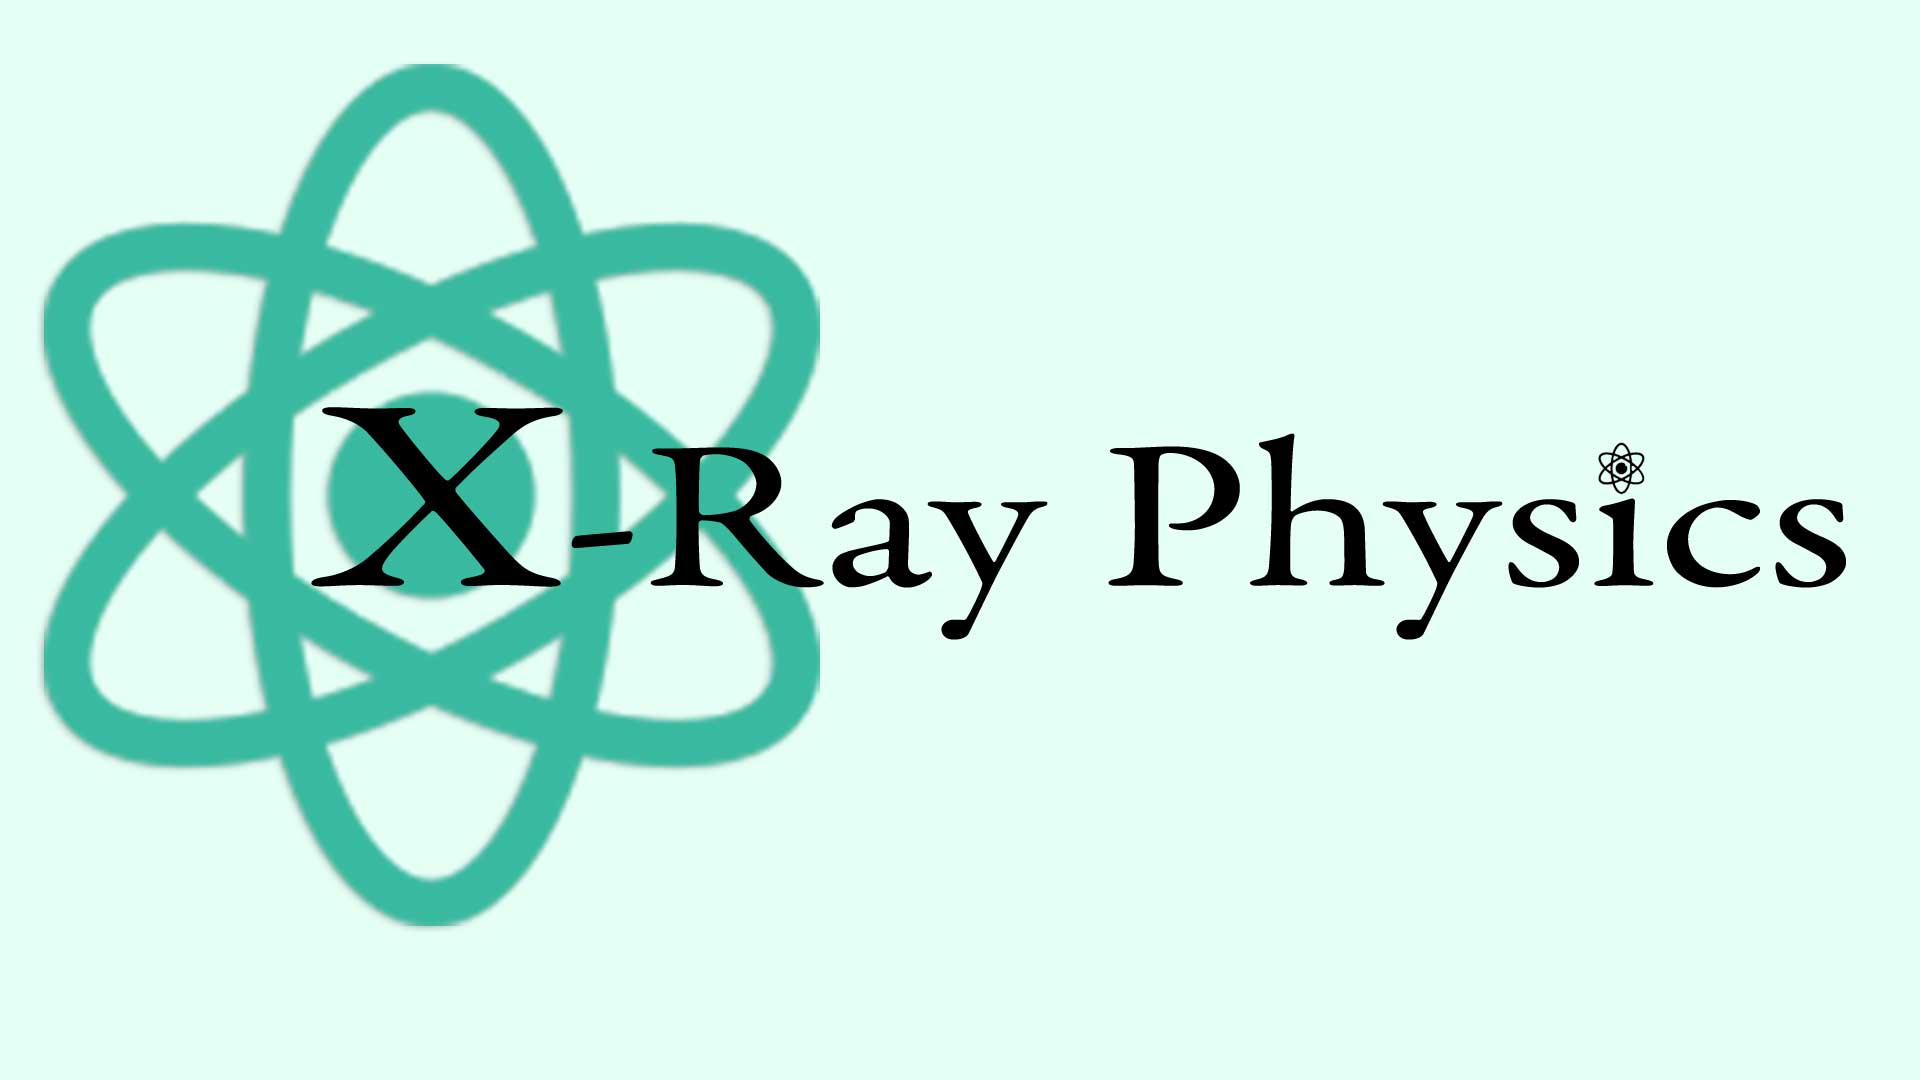 X-Ray Physics Graphic with Atom